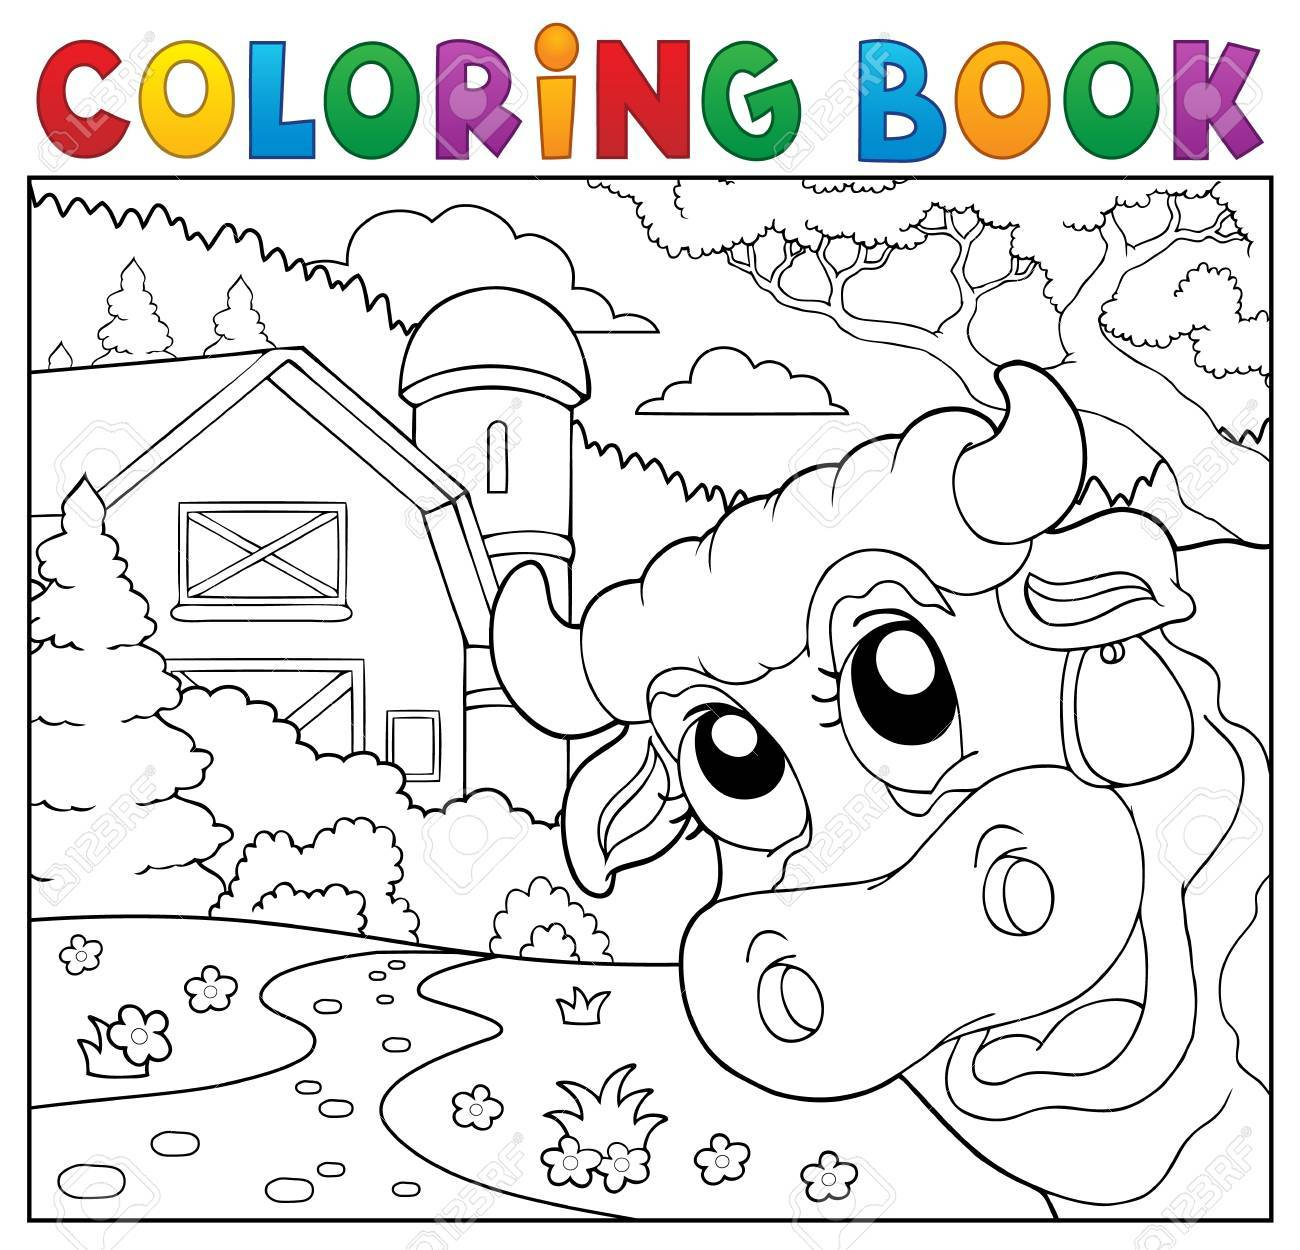 Coloring Book Lurking Cow Near Farm. Royalty Free Cliparts, Vectors ...